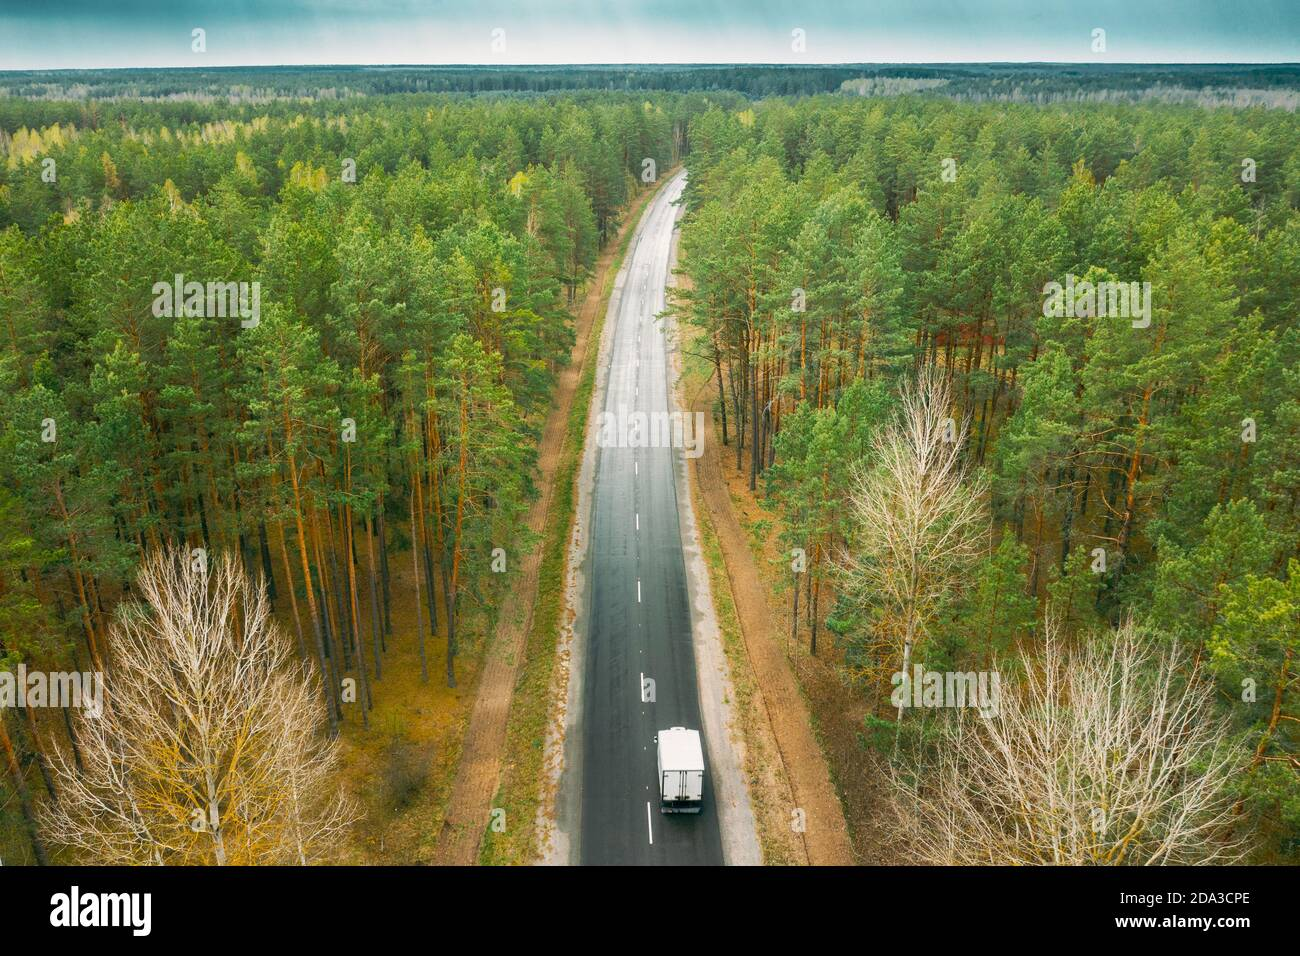 Aerial View Of Highway Road Through Spring Forest Landscape. Top View Of Truck Tractor Unit Prime Mover Traction Unit In Motion On Freeway. Business Stock Photo